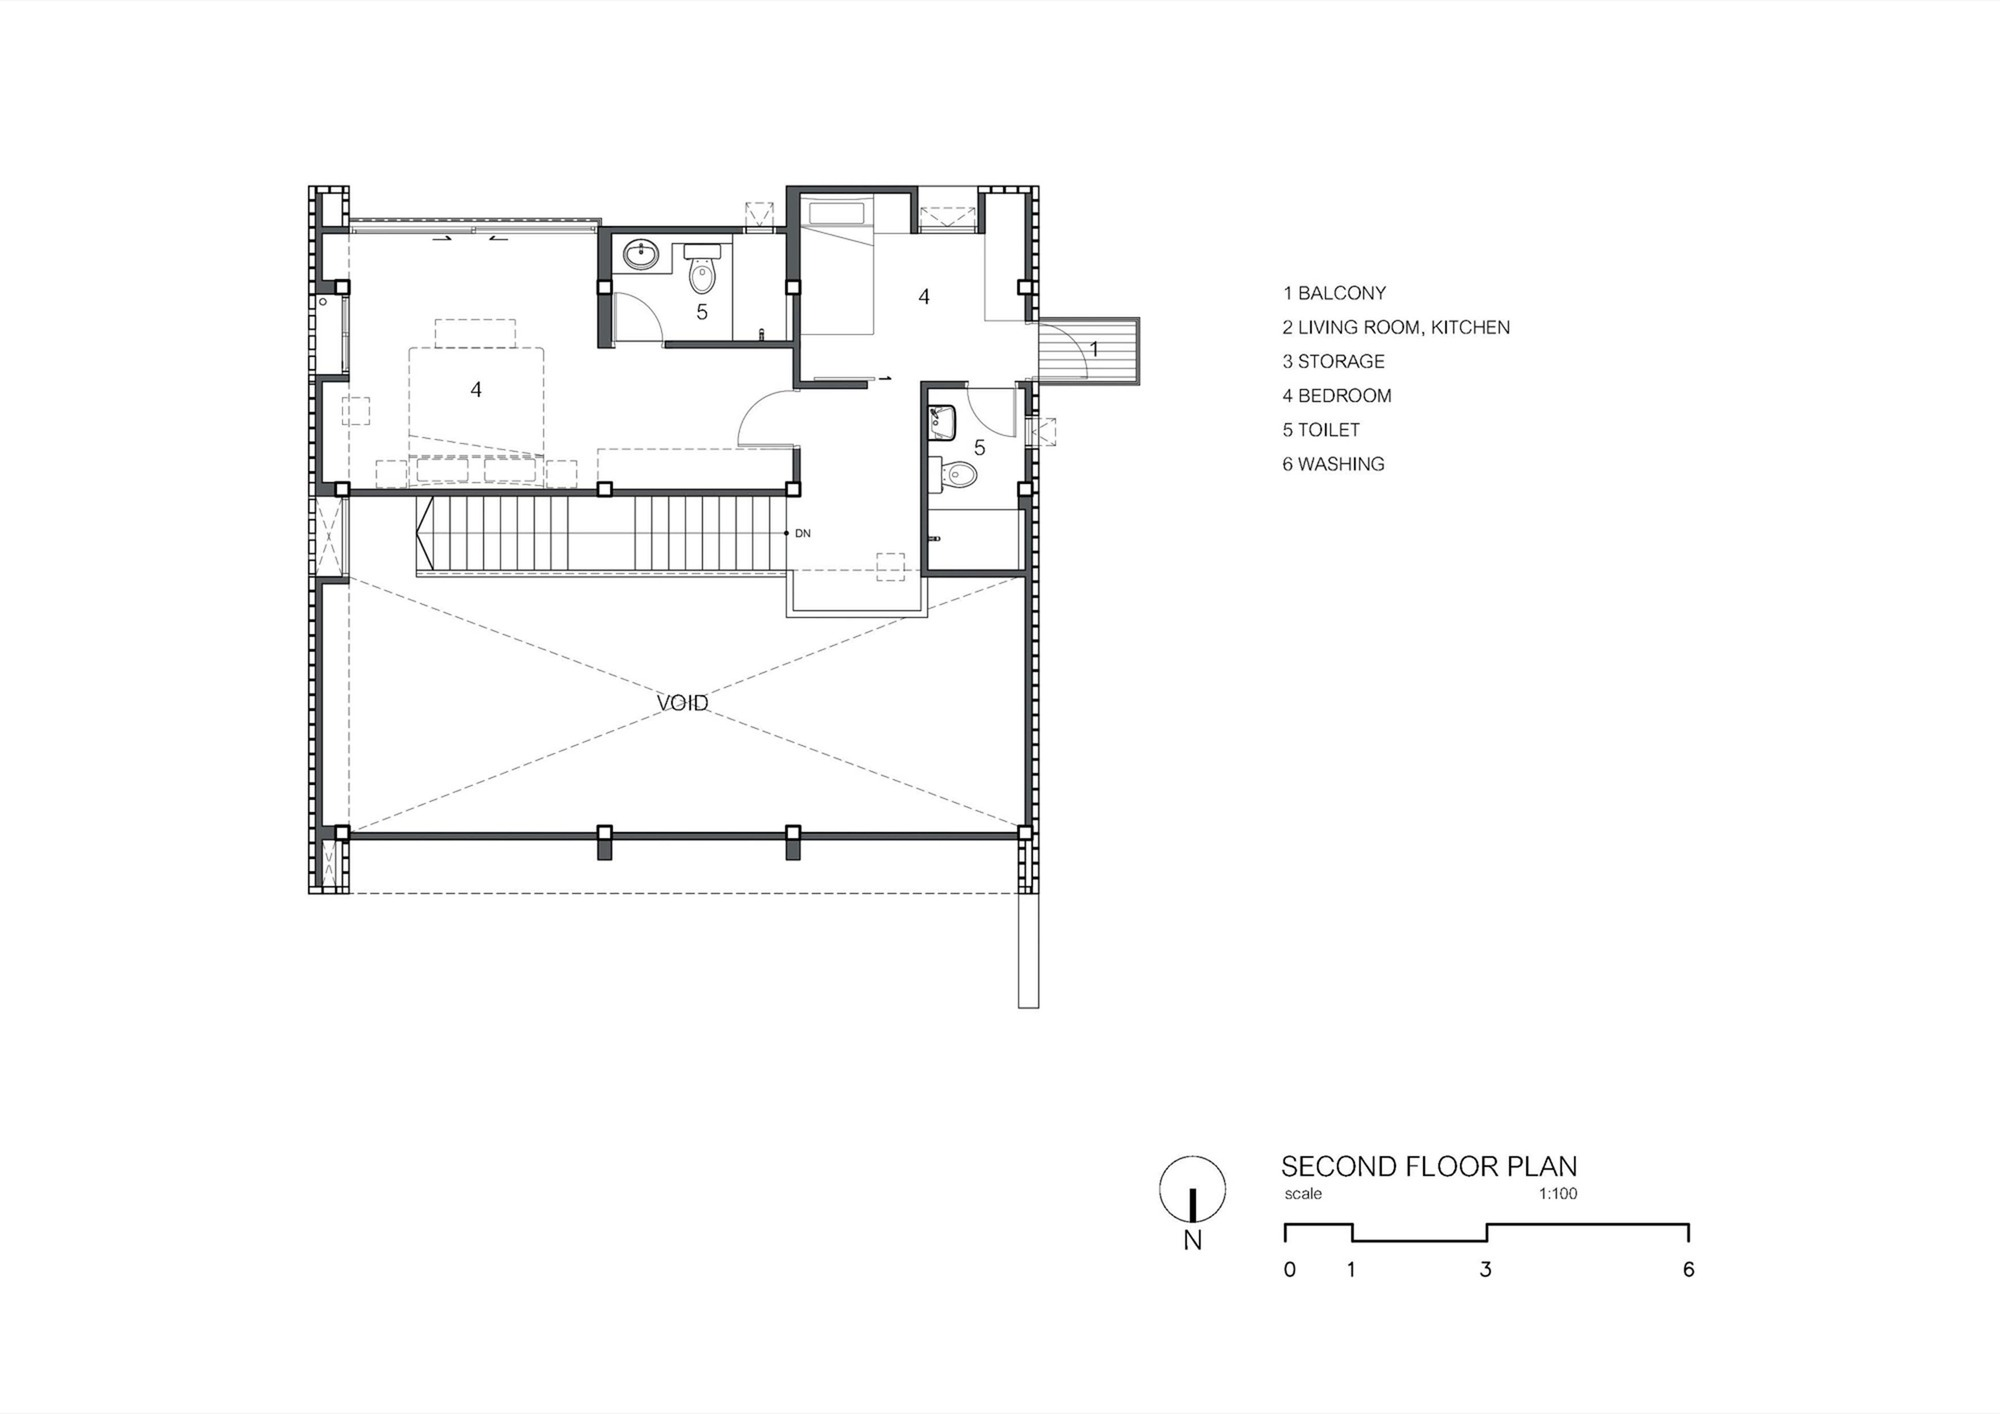 CK House / Full Scale Studio. 18 / 26. Second Floor Plan